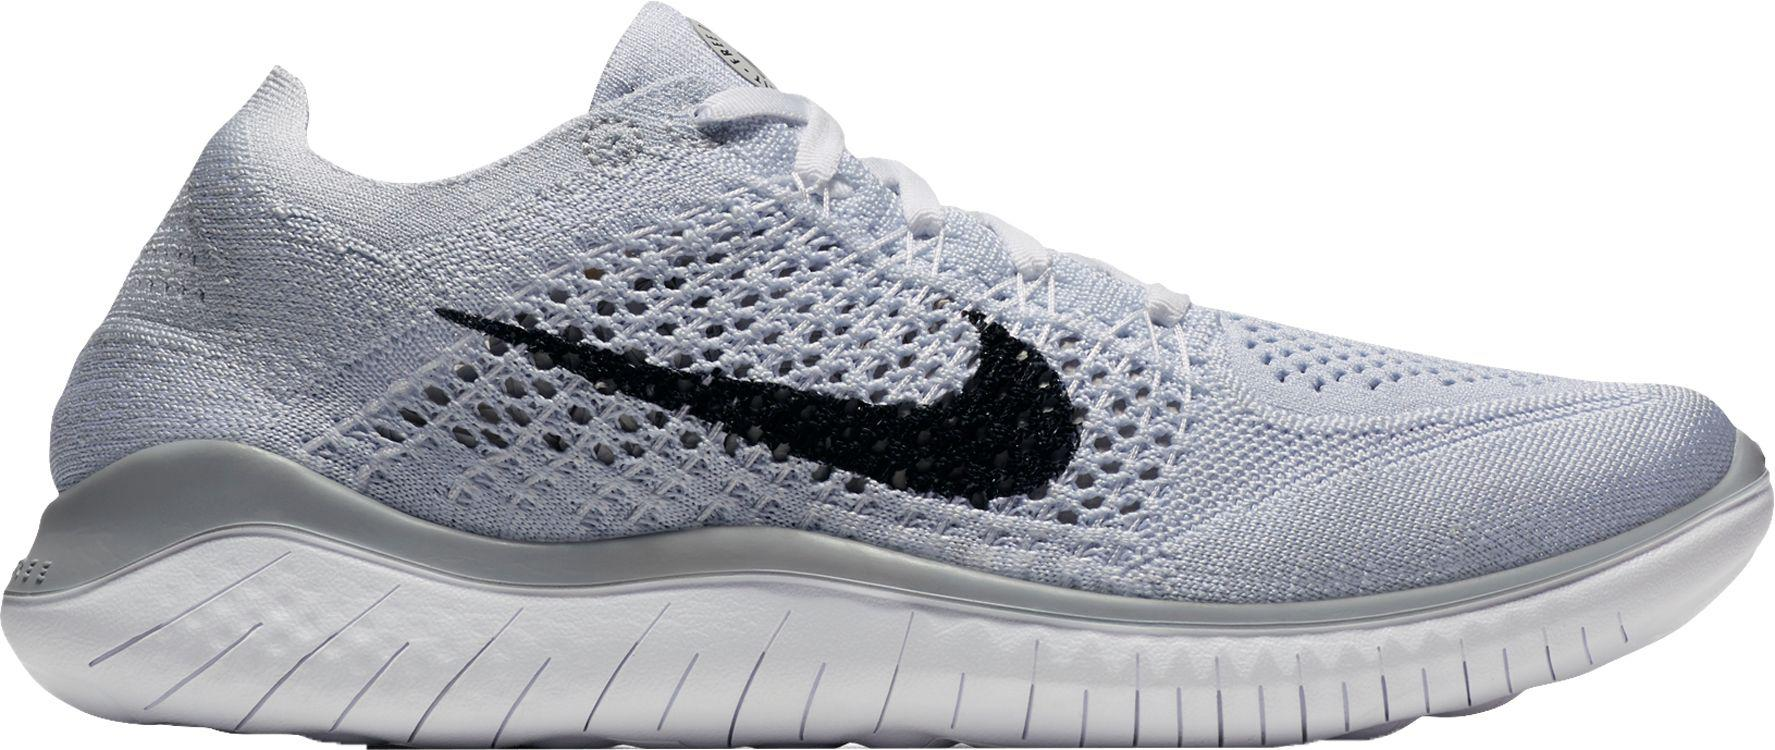 4c8f1e7aa5be Lyst - Nike Free Rn Flyknit 2018 Running Shoes in Gray